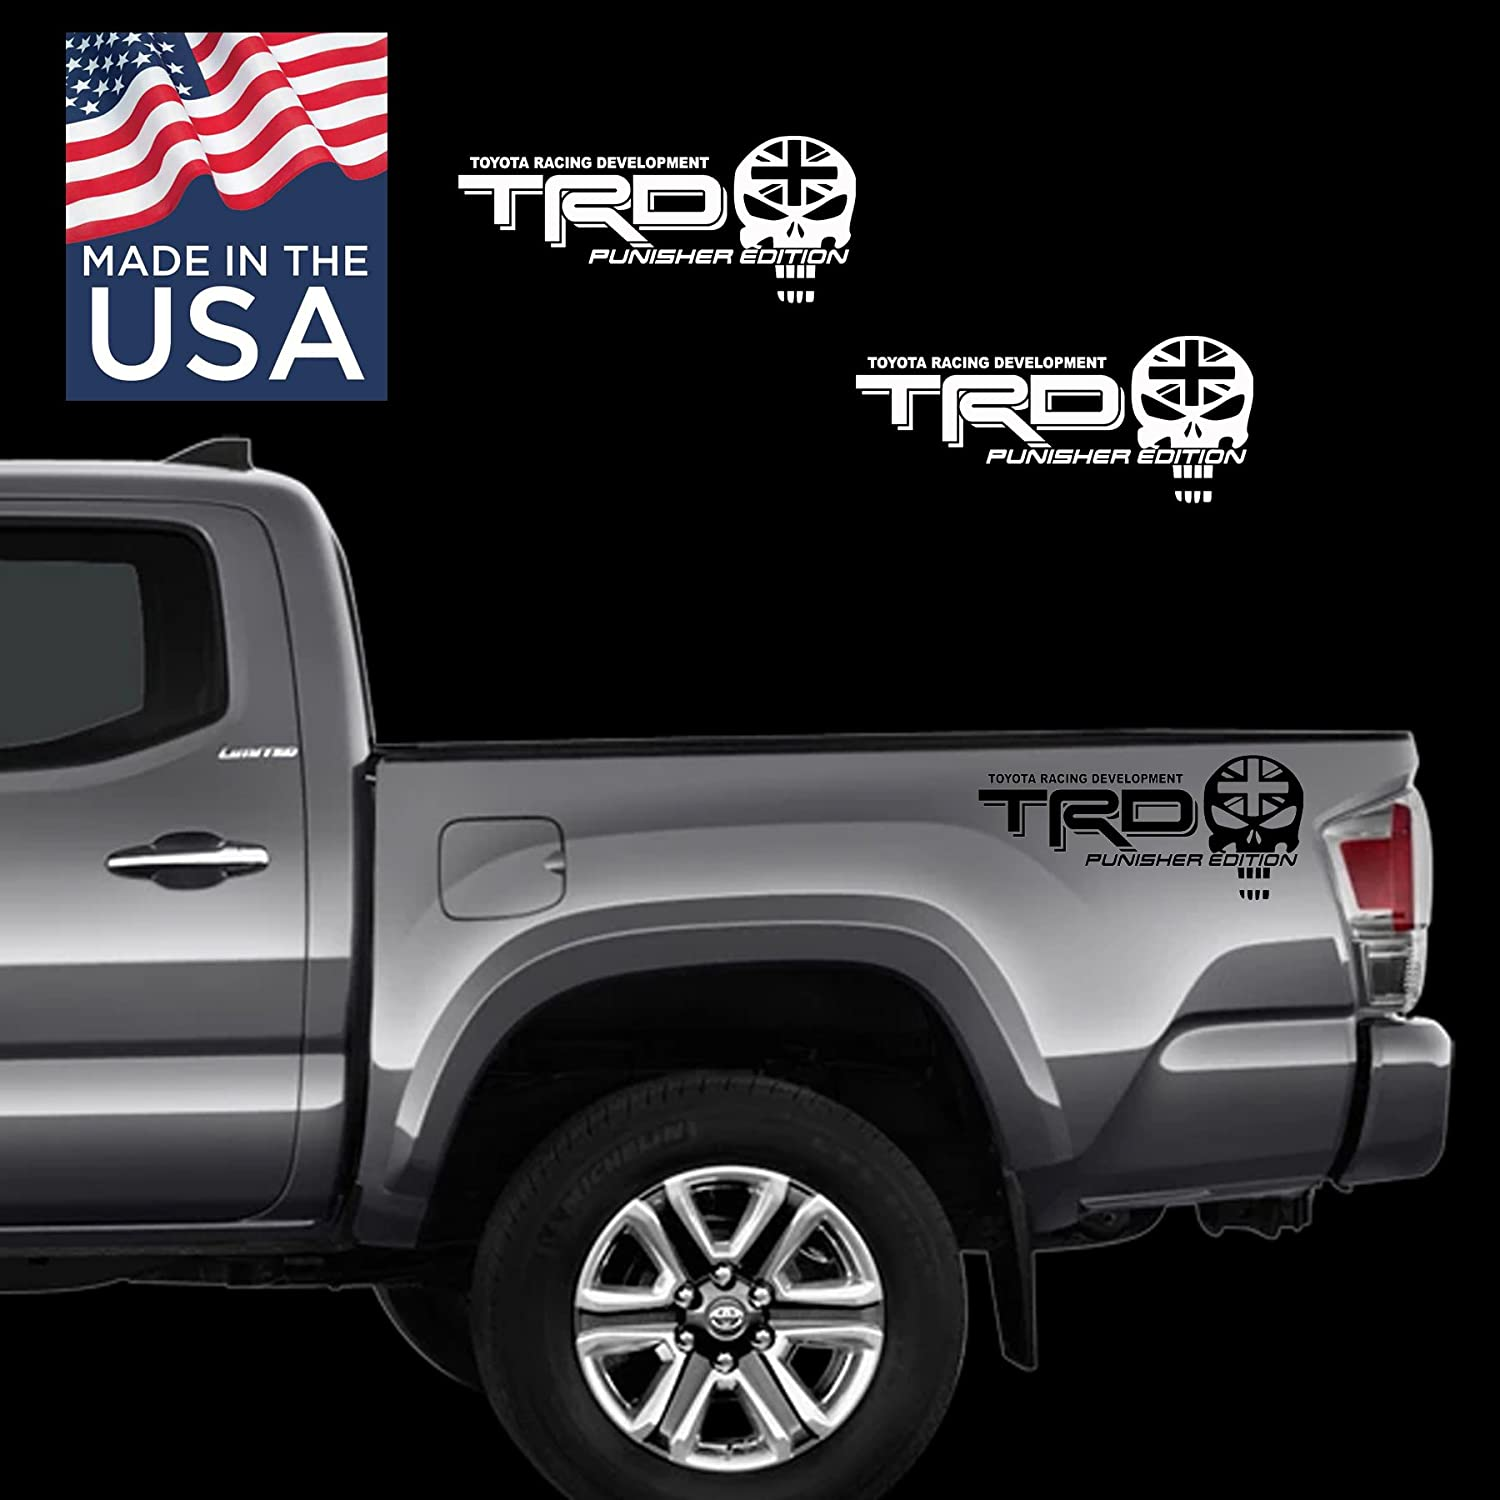 Toyota TRD Car Truck SUV Off-Road 4x4 Racing PUNISHER EDITION UK Flag Decal Vinyl Stickers